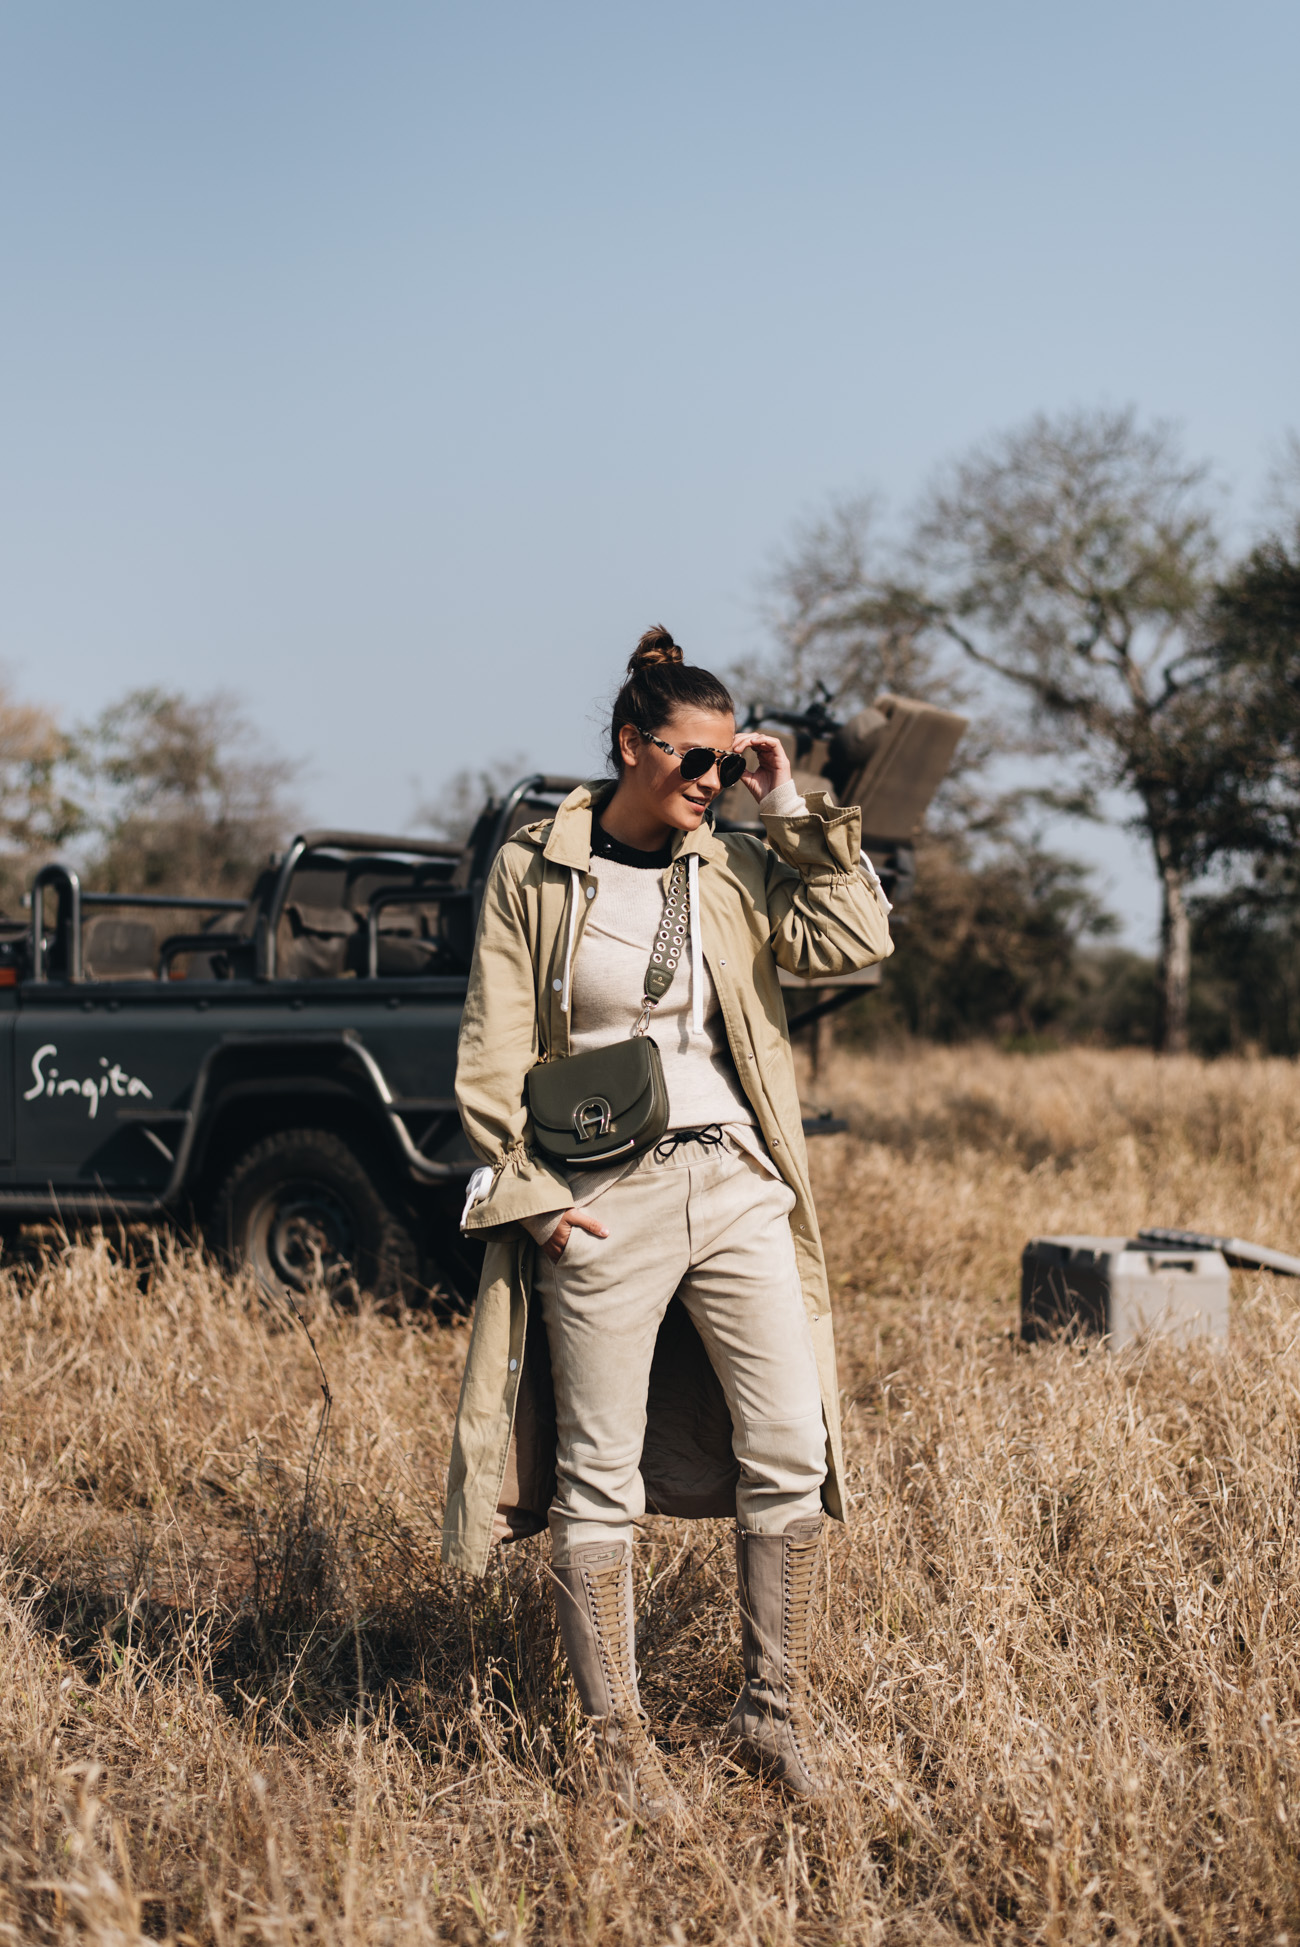 Fashion-Editorial-Shooting-safari-Busch-südafrika-singize-lodges-fashiioncarpet-nina-schwichtenberg